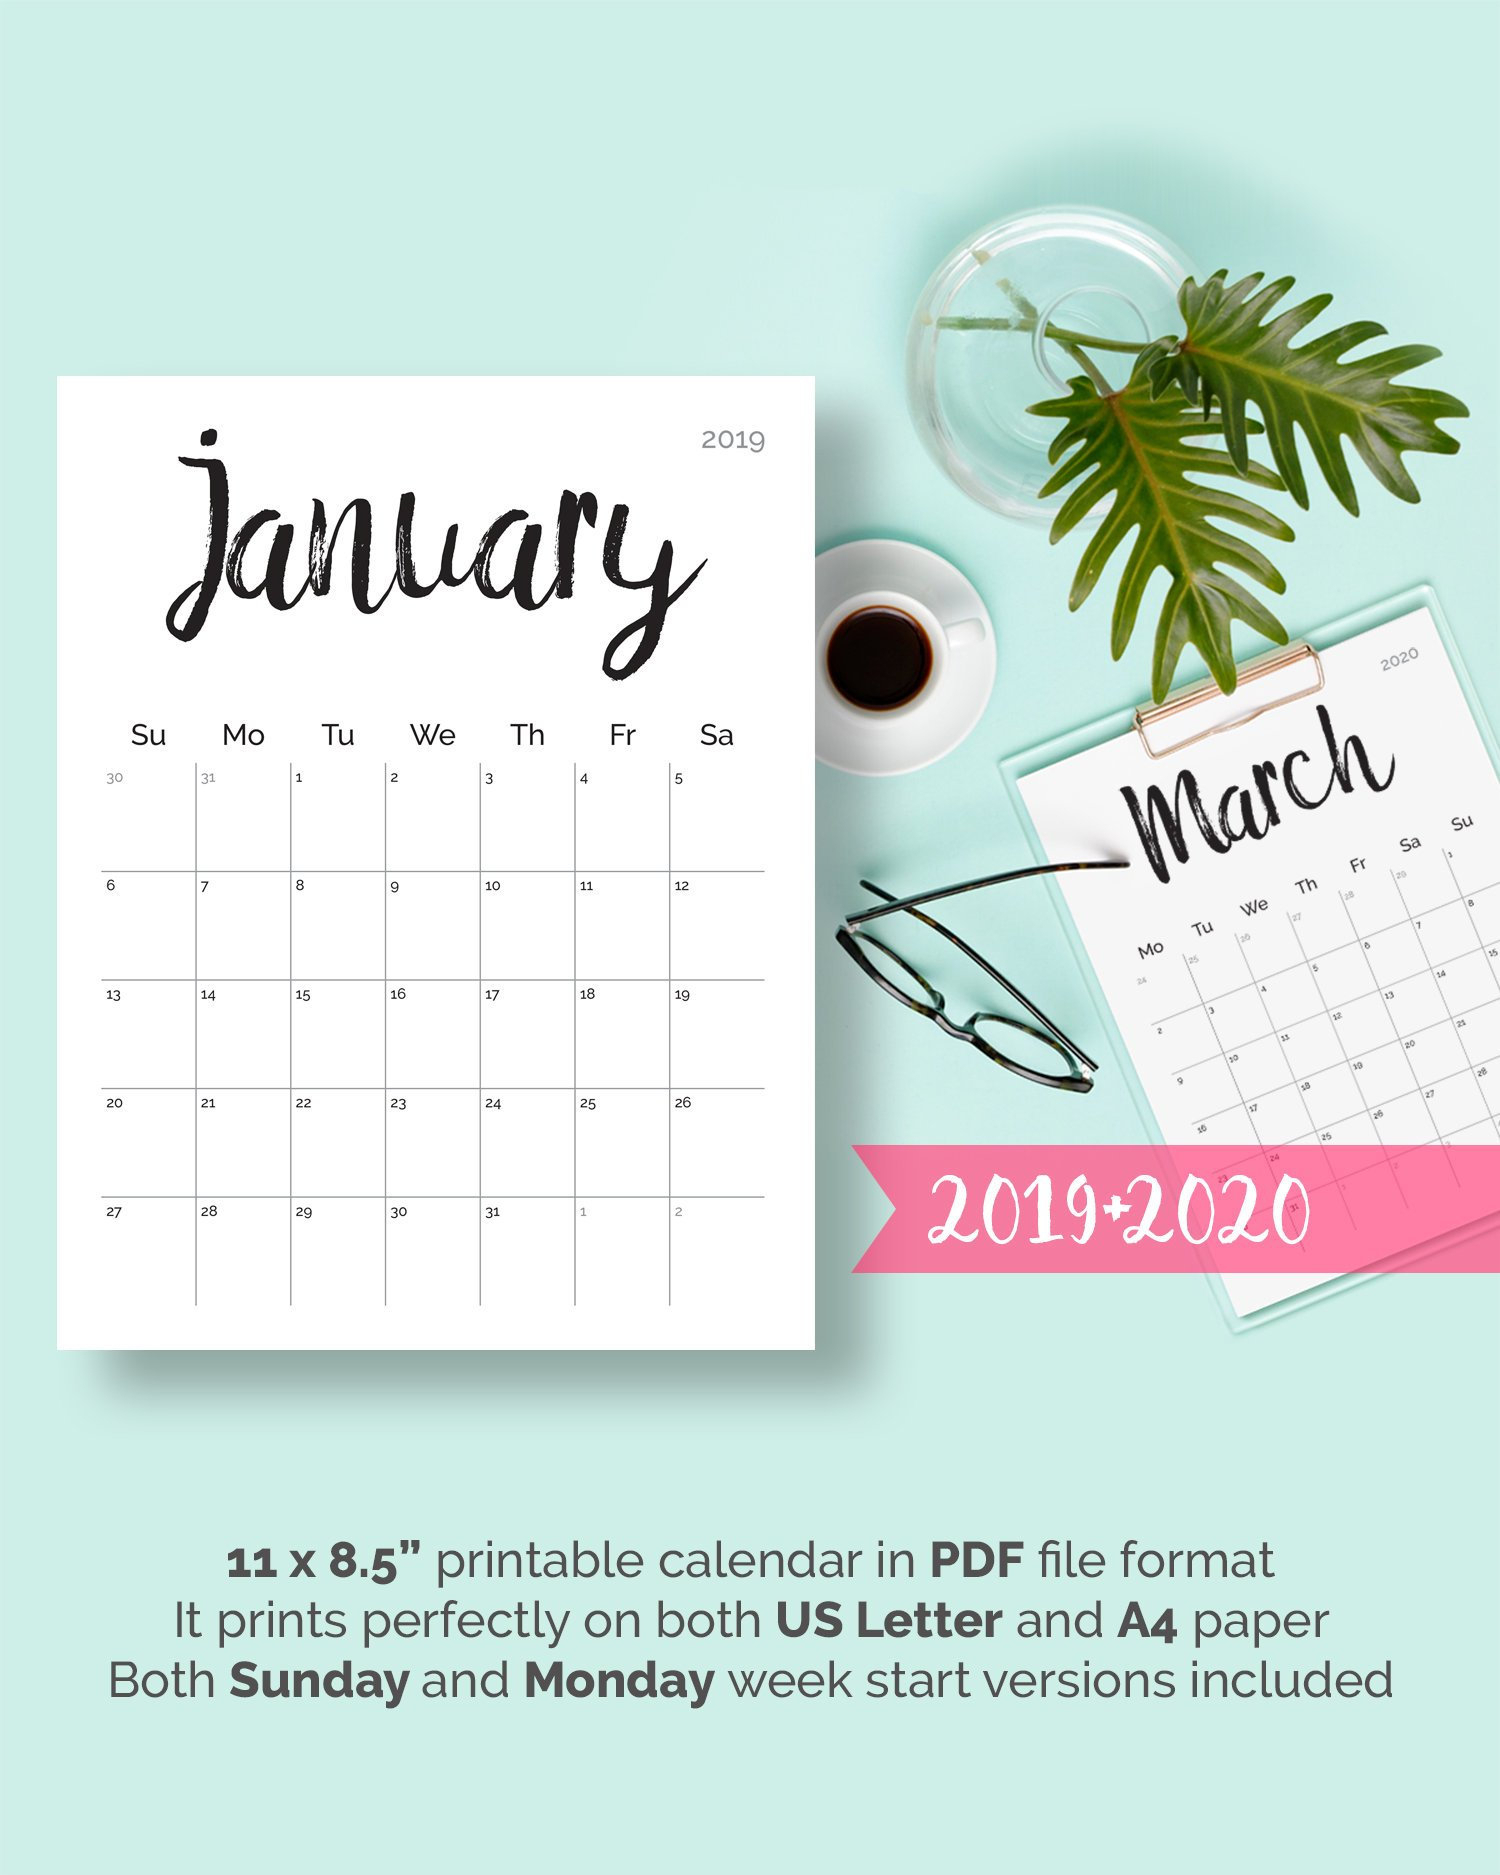 Printable Calendar 2019 2020 2018 Desk Calendar Pdf Download Planner 2019  Calendar Pages, Digital Monthly 2019 2020 Calendar Printable 2019 throughout Pretty Printable Calendar 2020 Without Download